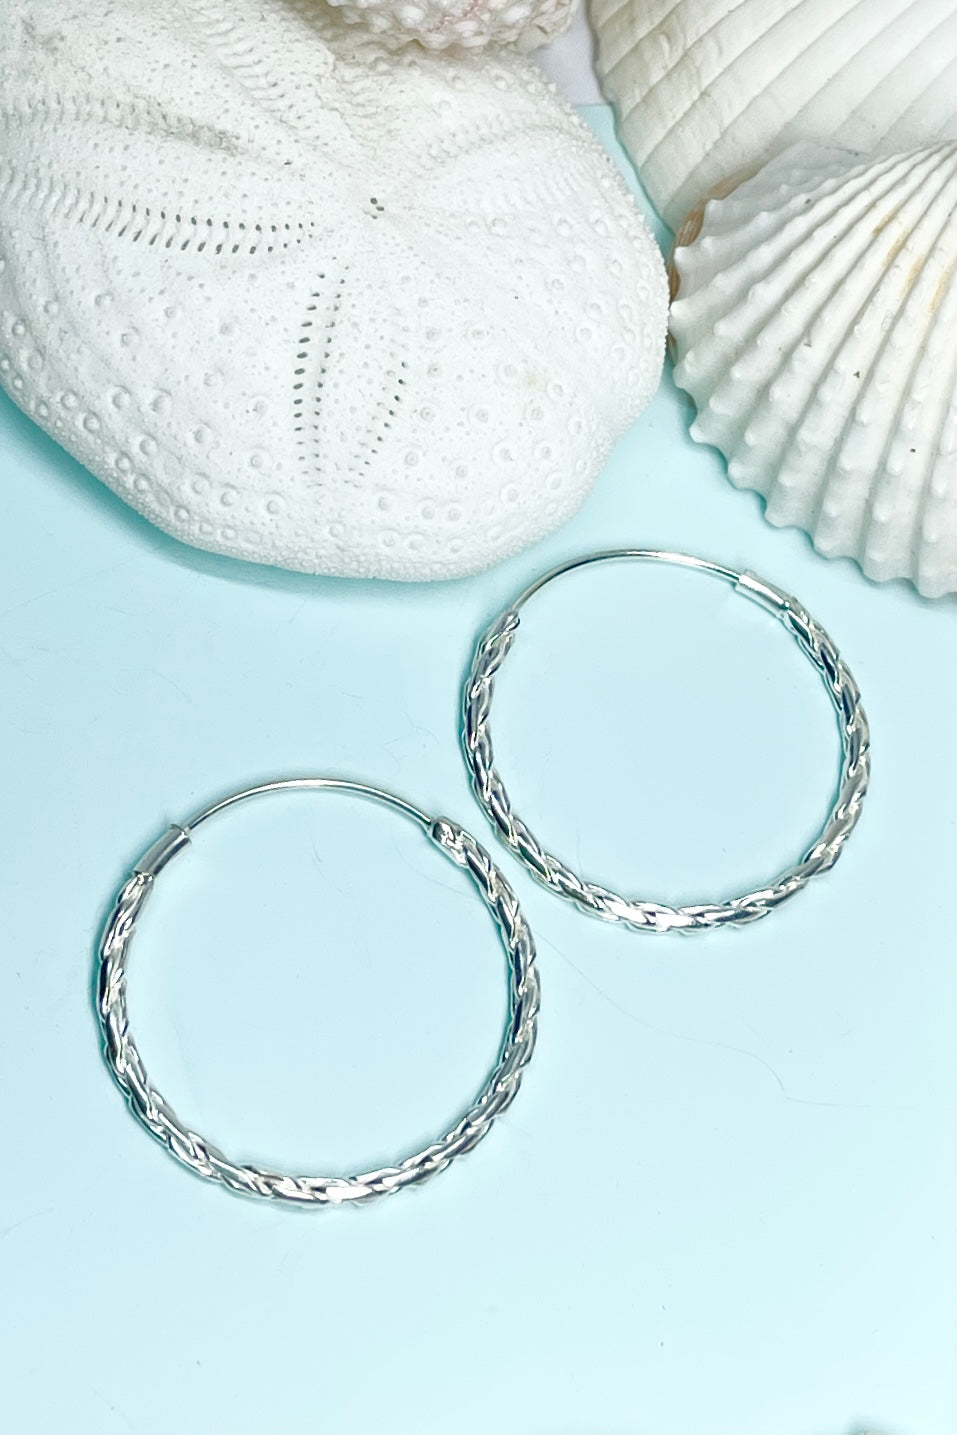 pretty Silver hoop earrings. Not too big or too small just perfect. The hoop has a textured finish